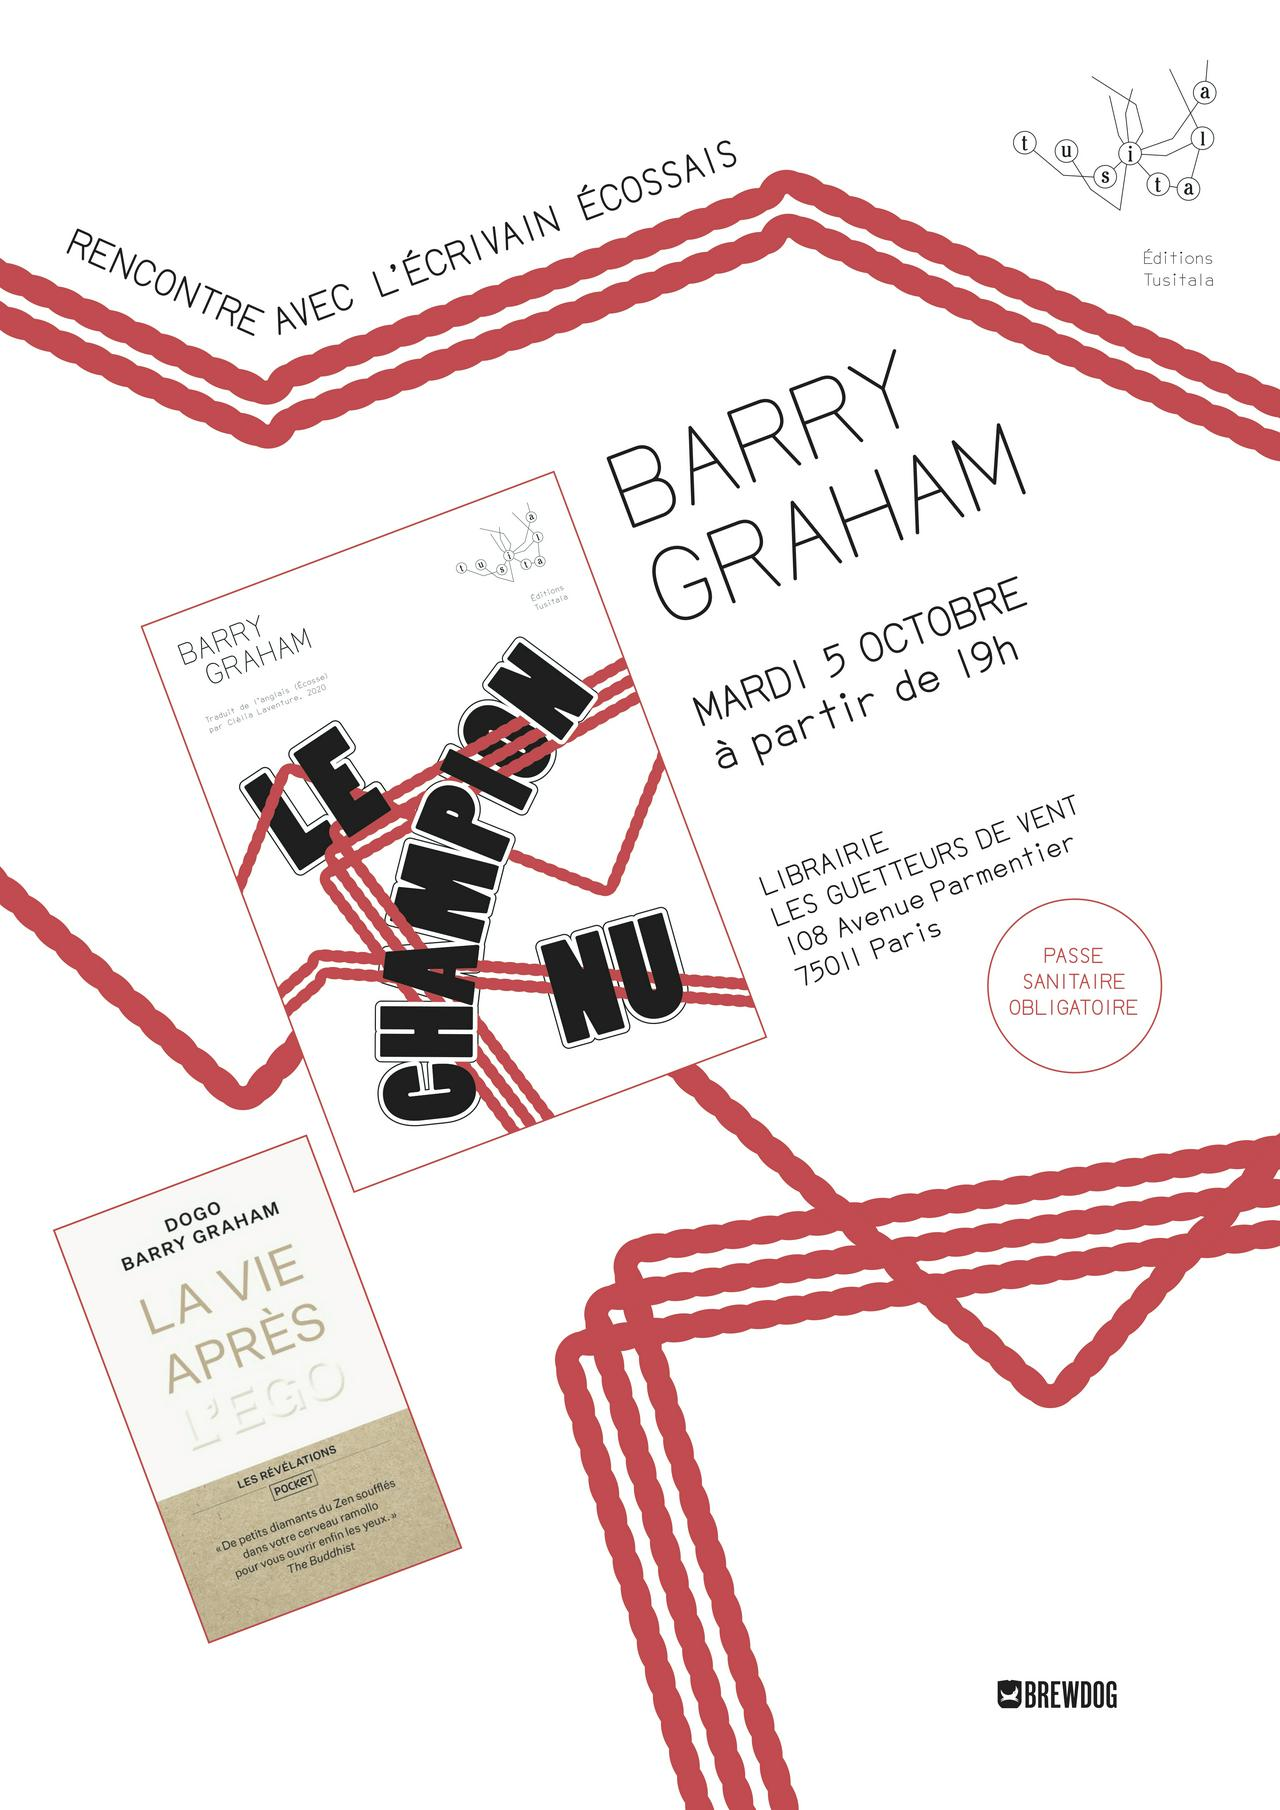 Poster for Barry Graham author event in Paris